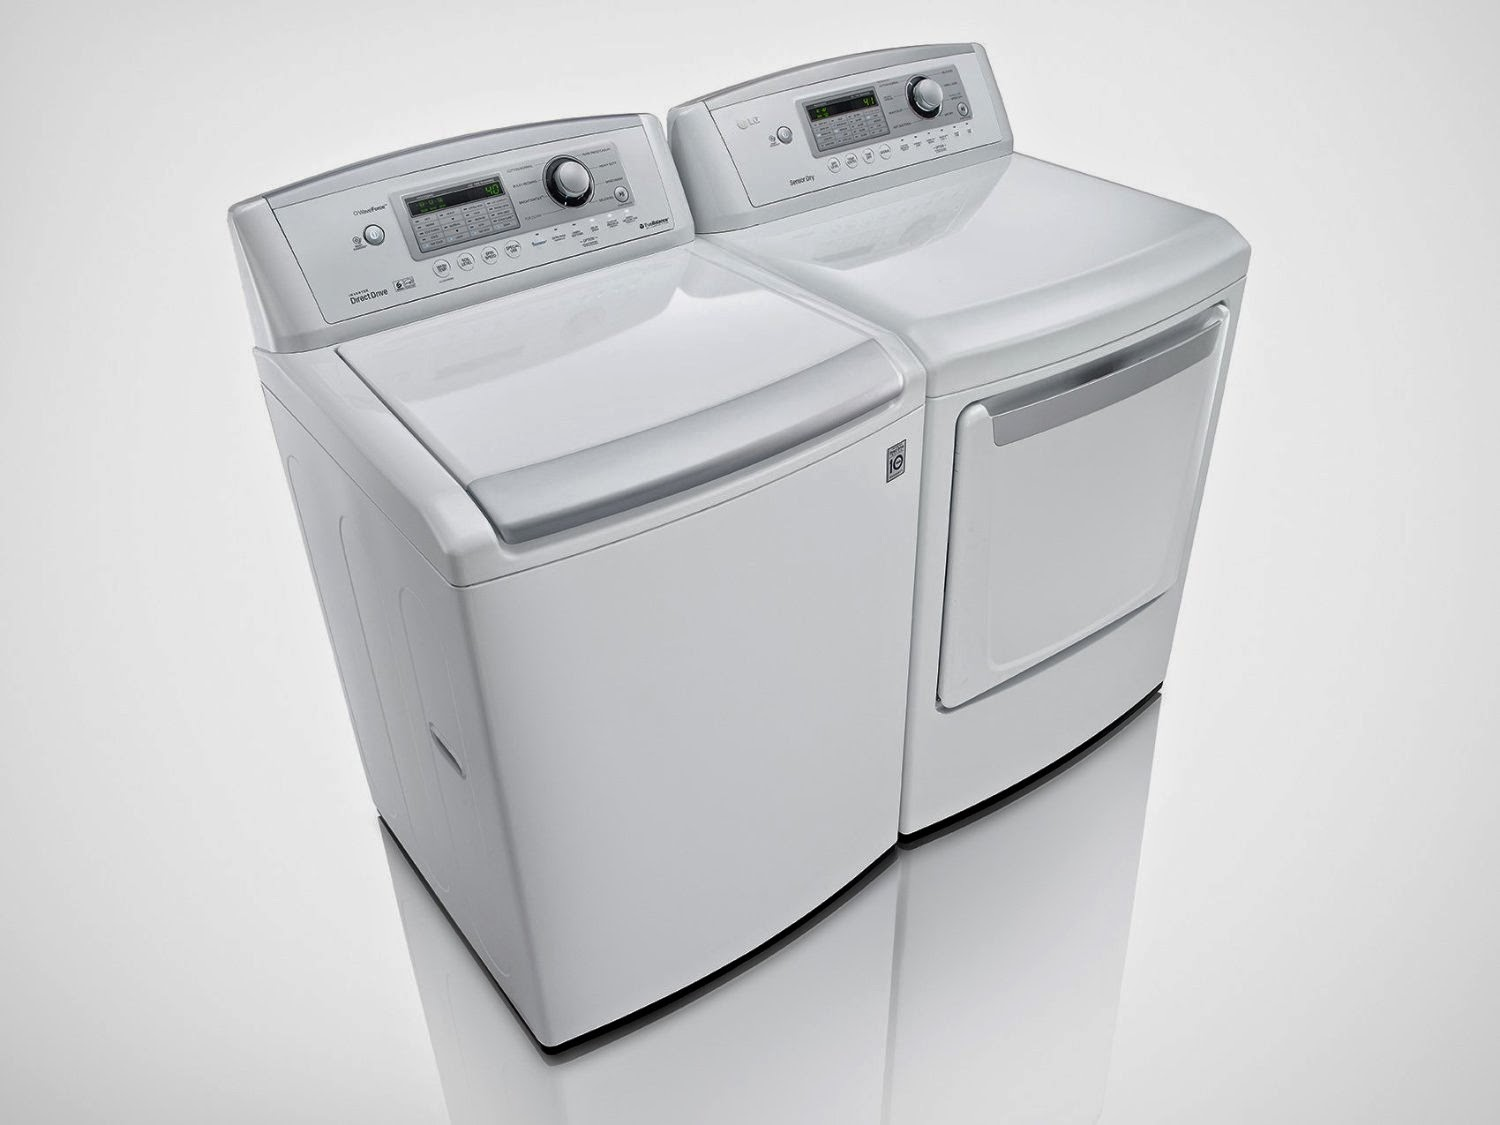 Best Buy Washers And Dryers On Sale Amazon Student Free